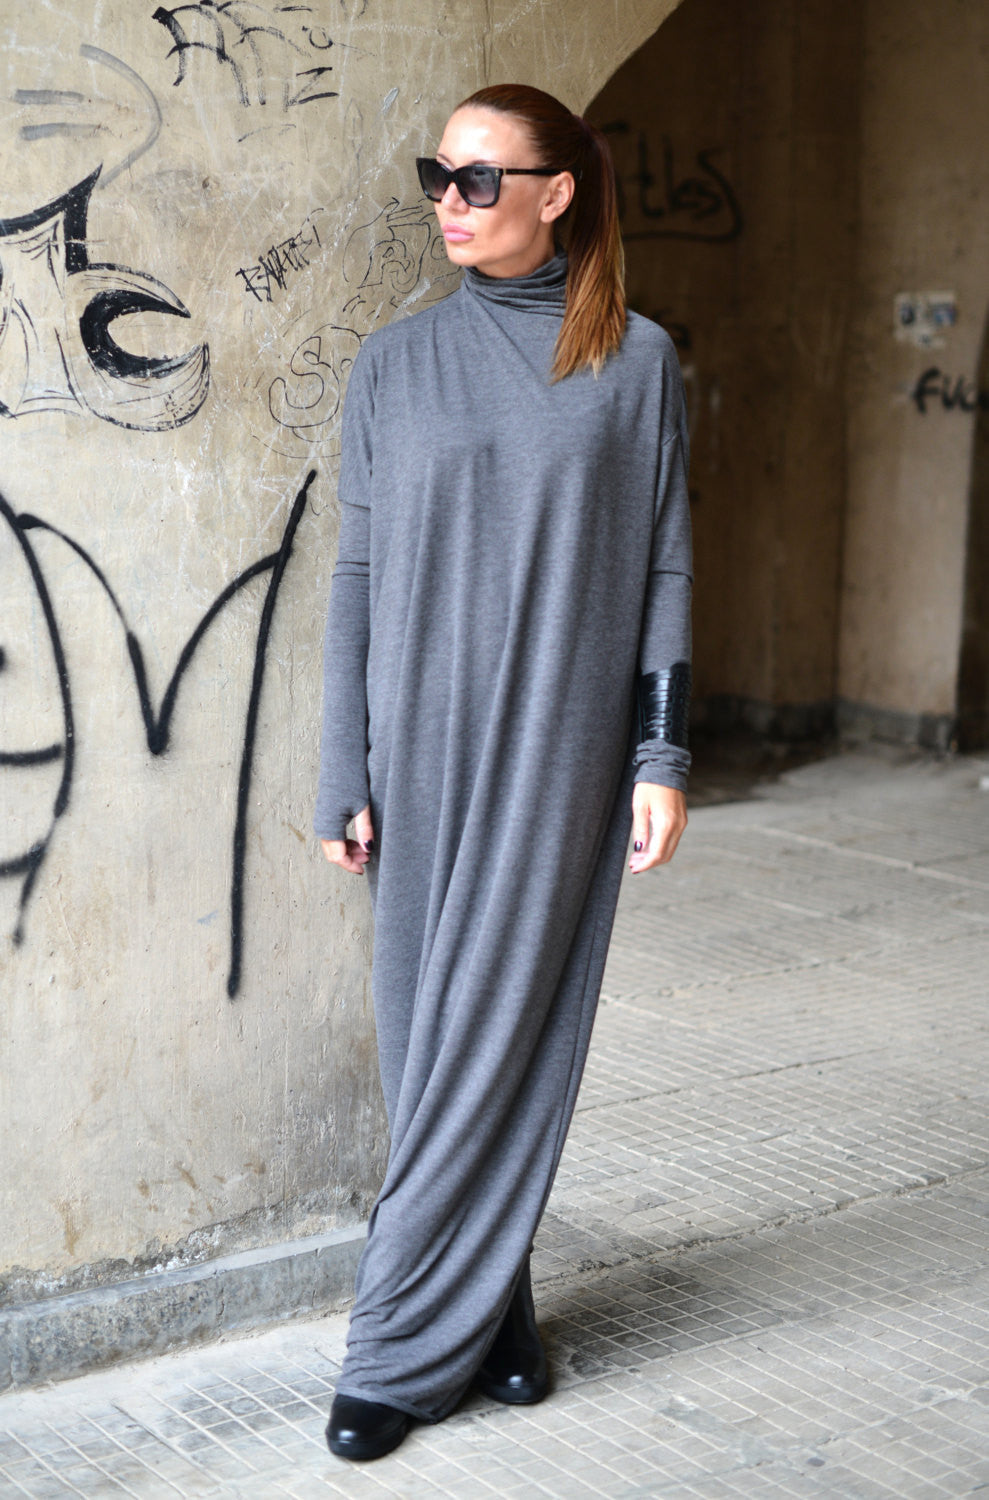 Turtleneck maxi dress plus size